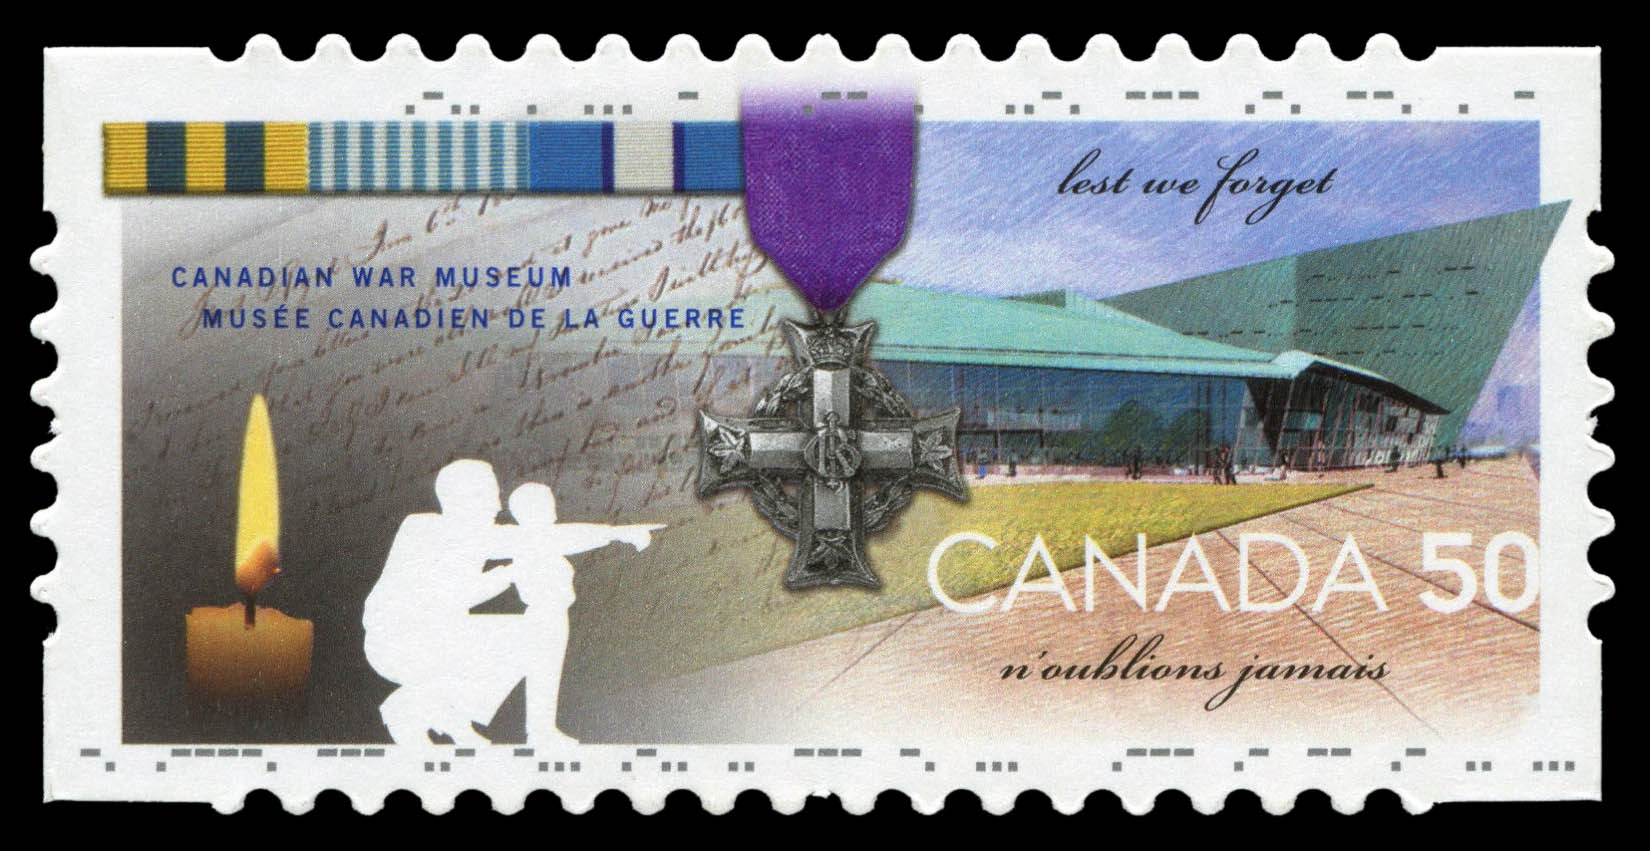 Canadian War Museum, Lest we forget Canada Postage Stamp